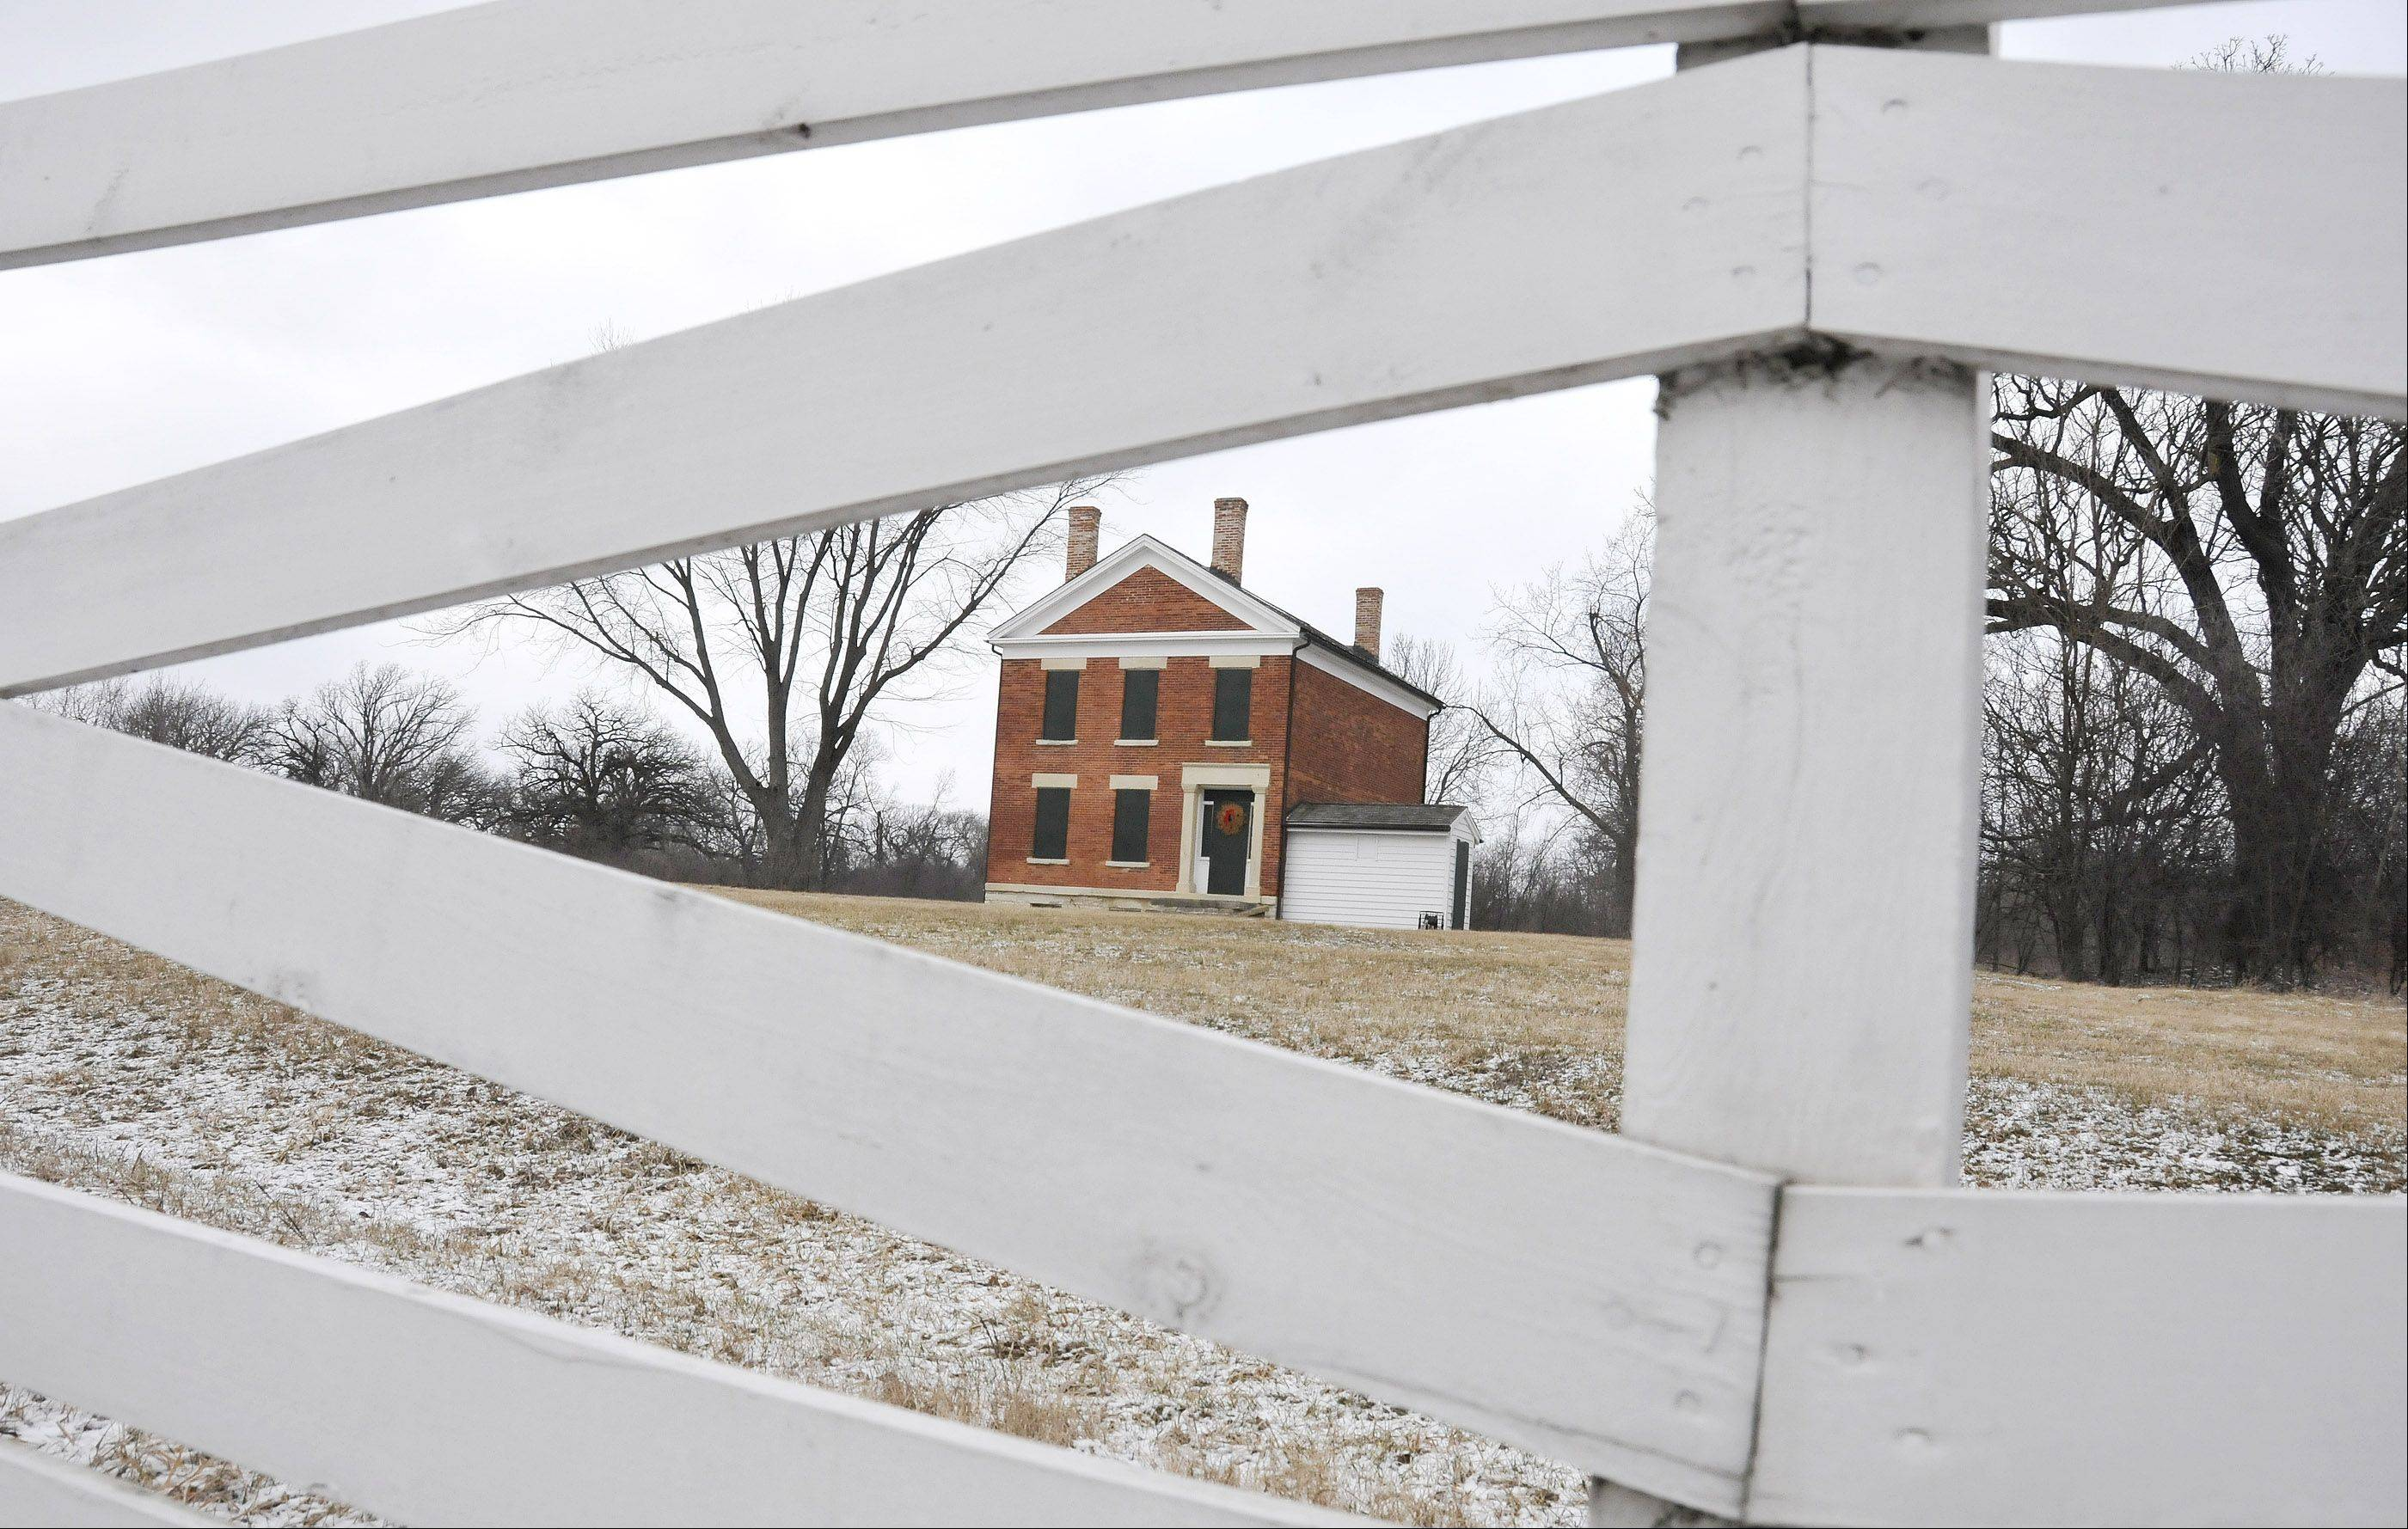 DuPage forest preserve takes new look at old structures